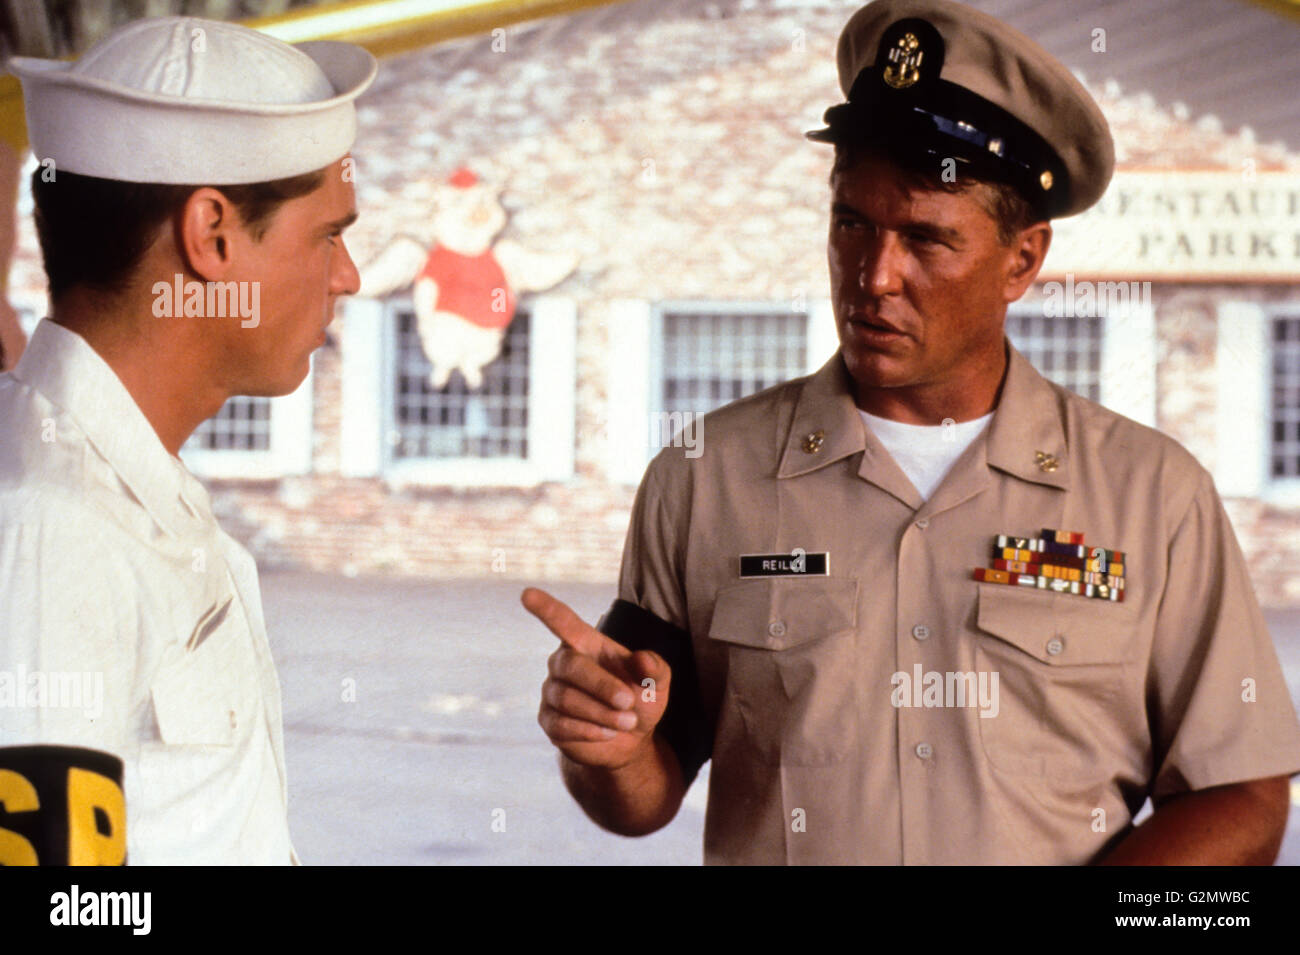 william mcnamara,tom berenger,chasers - Stock Image